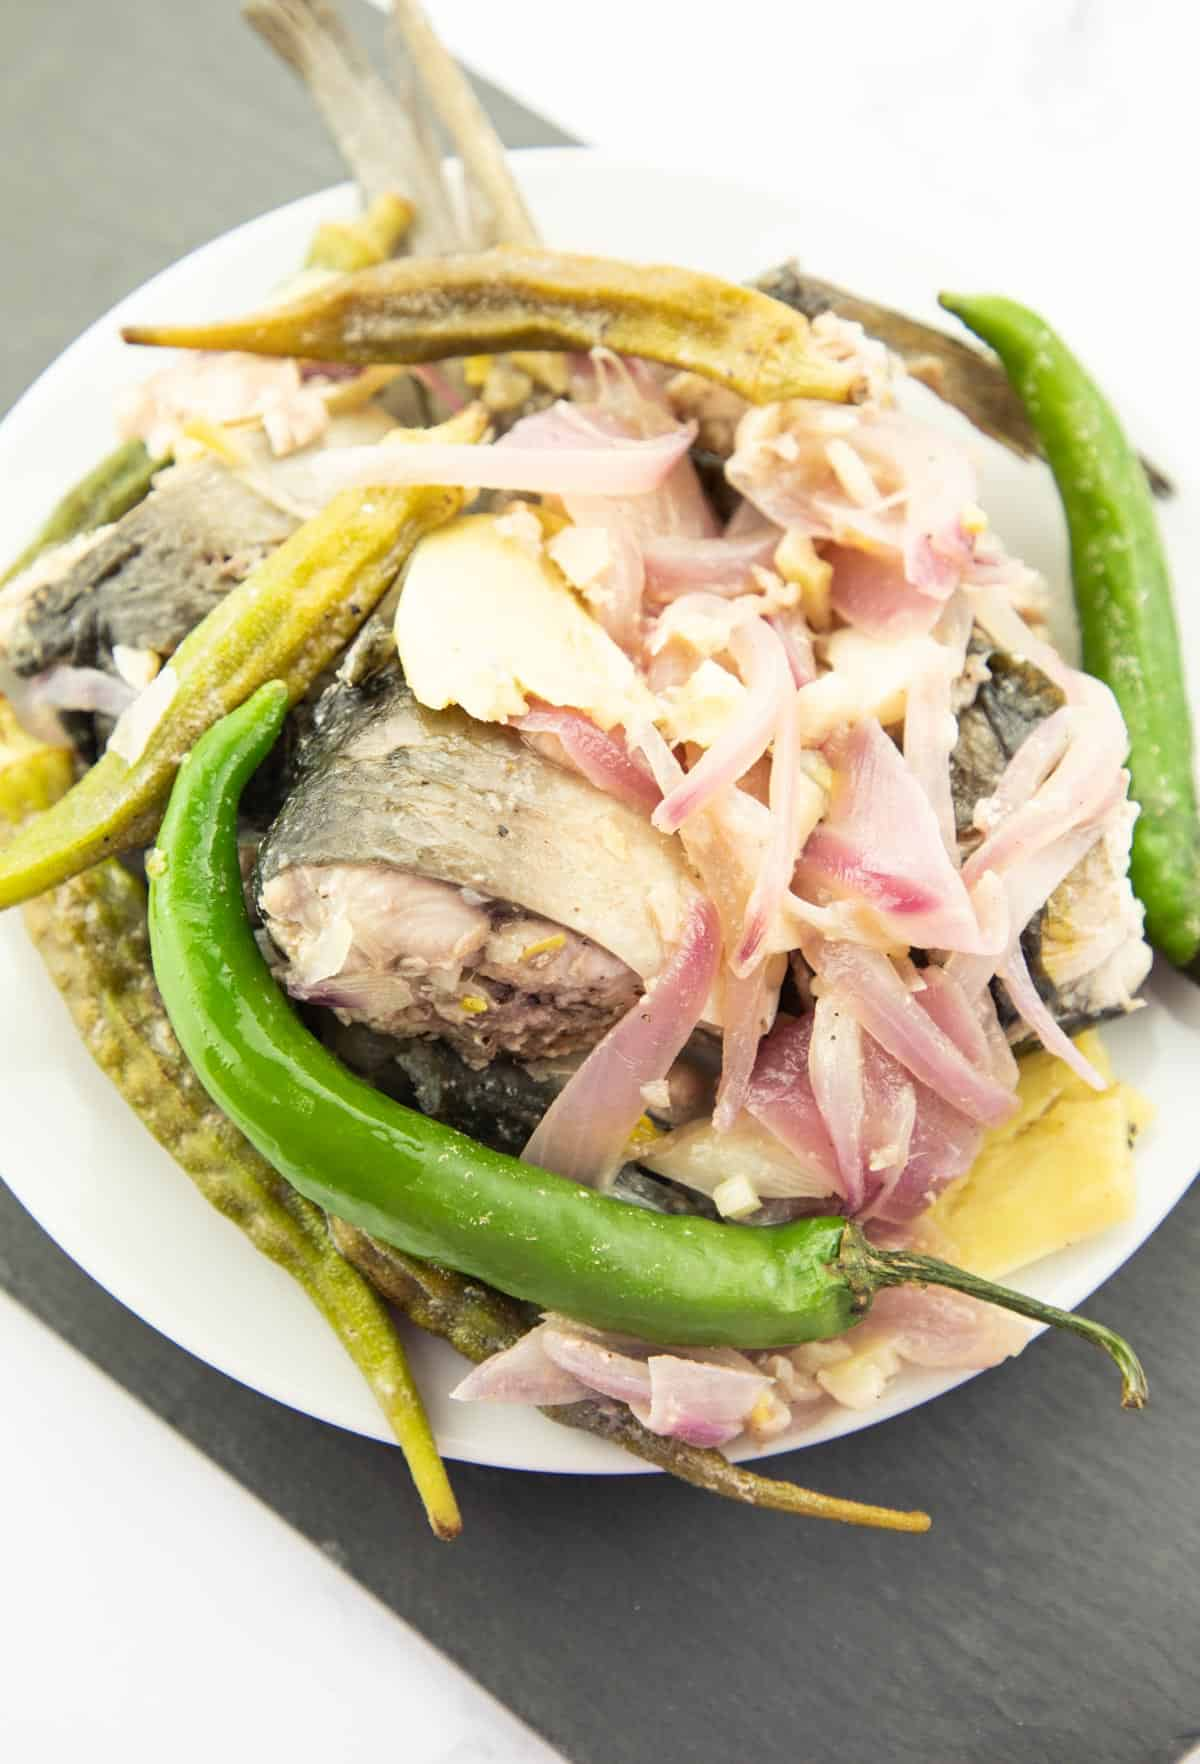 milkfish stewed in lemon juice with okra and green chili peppers on white plate.